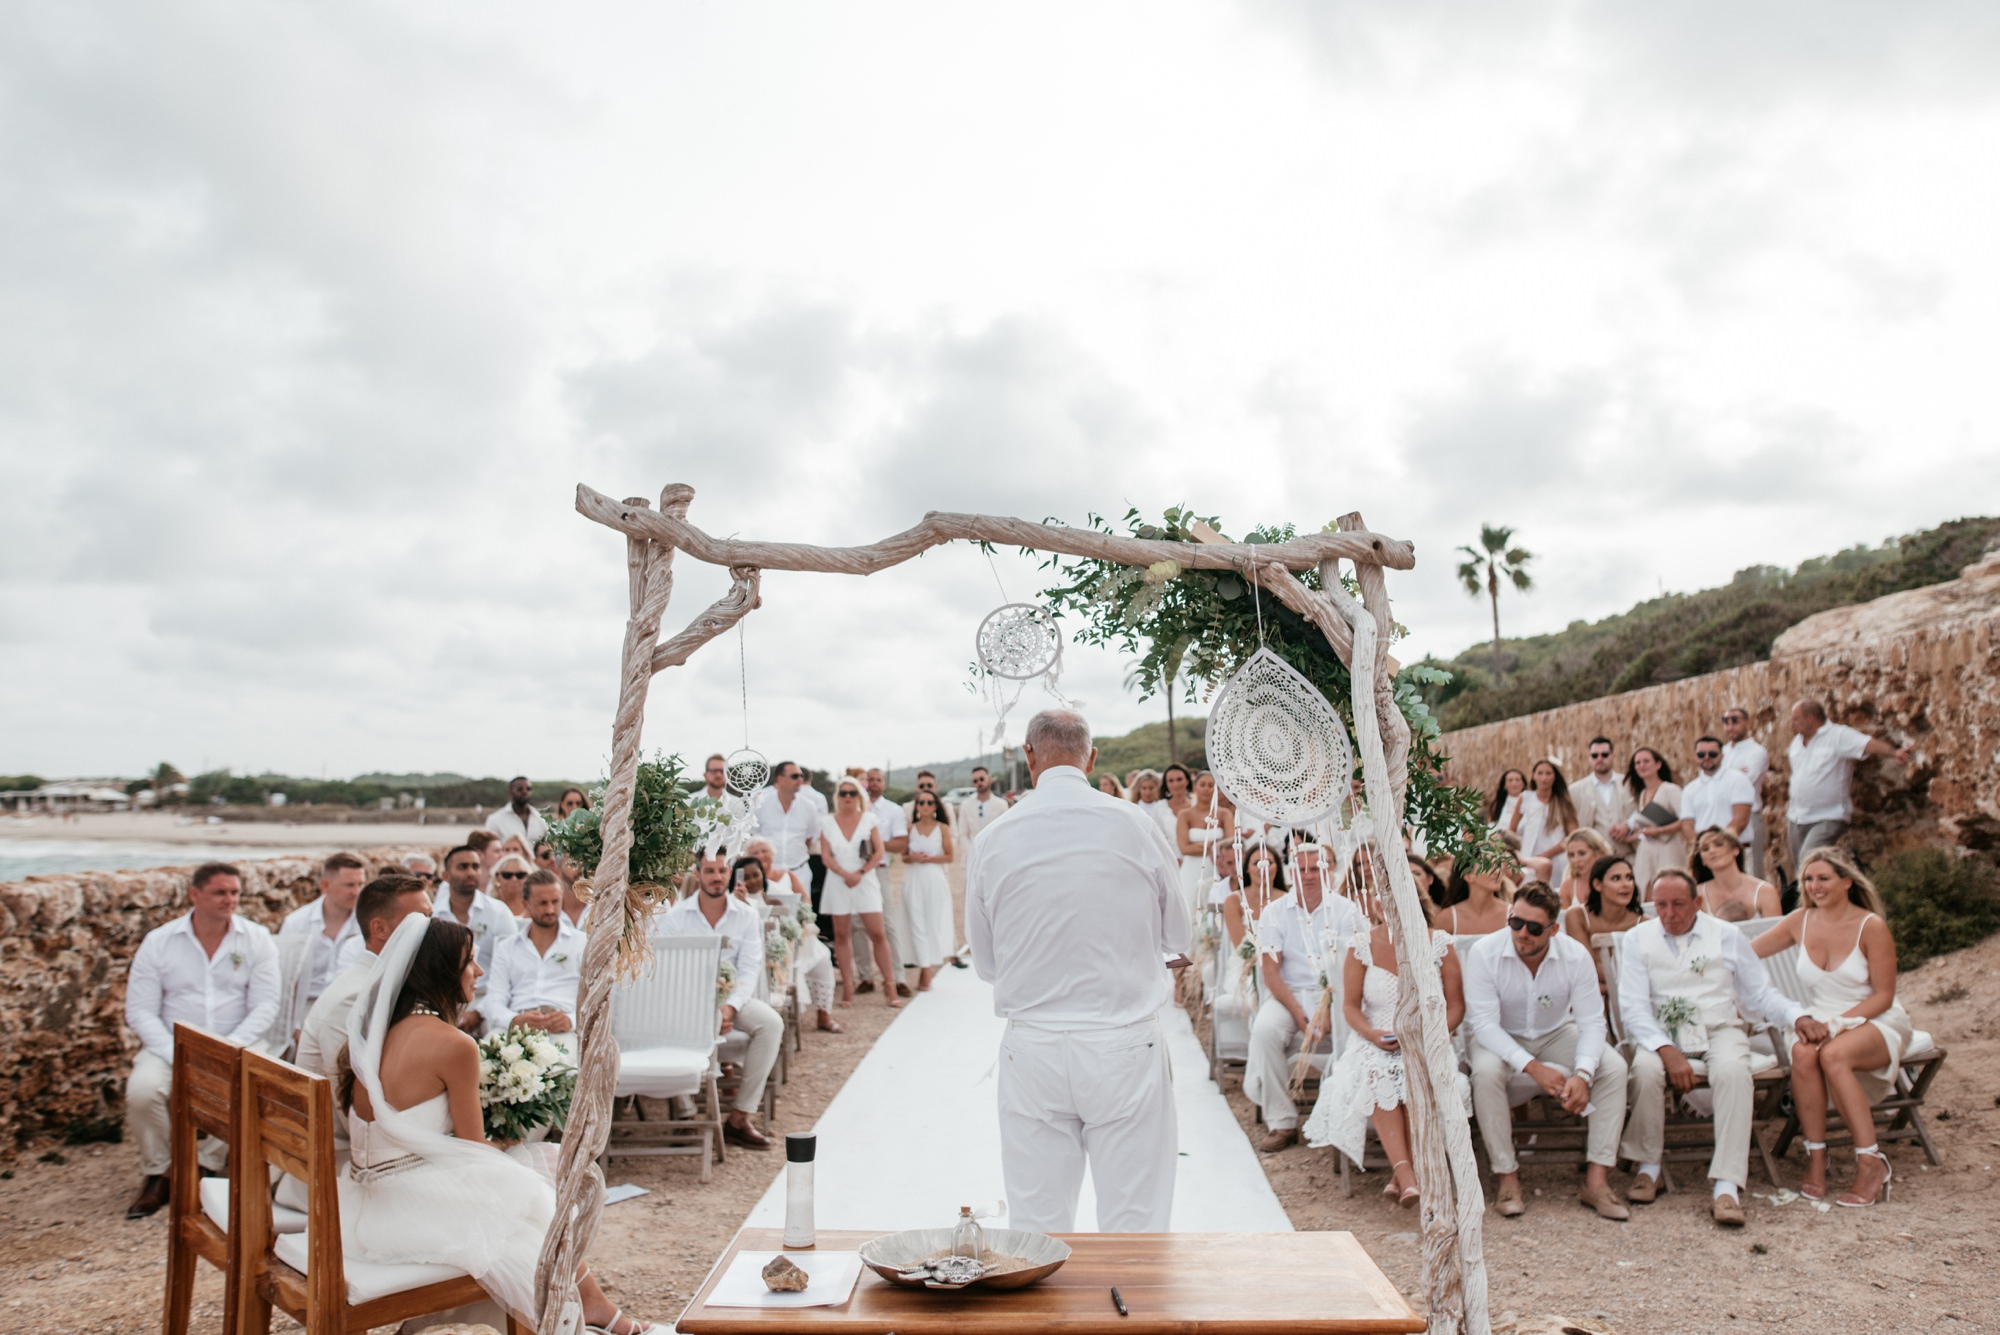 natural wedding photo destination la escollera ibiza 0059 1